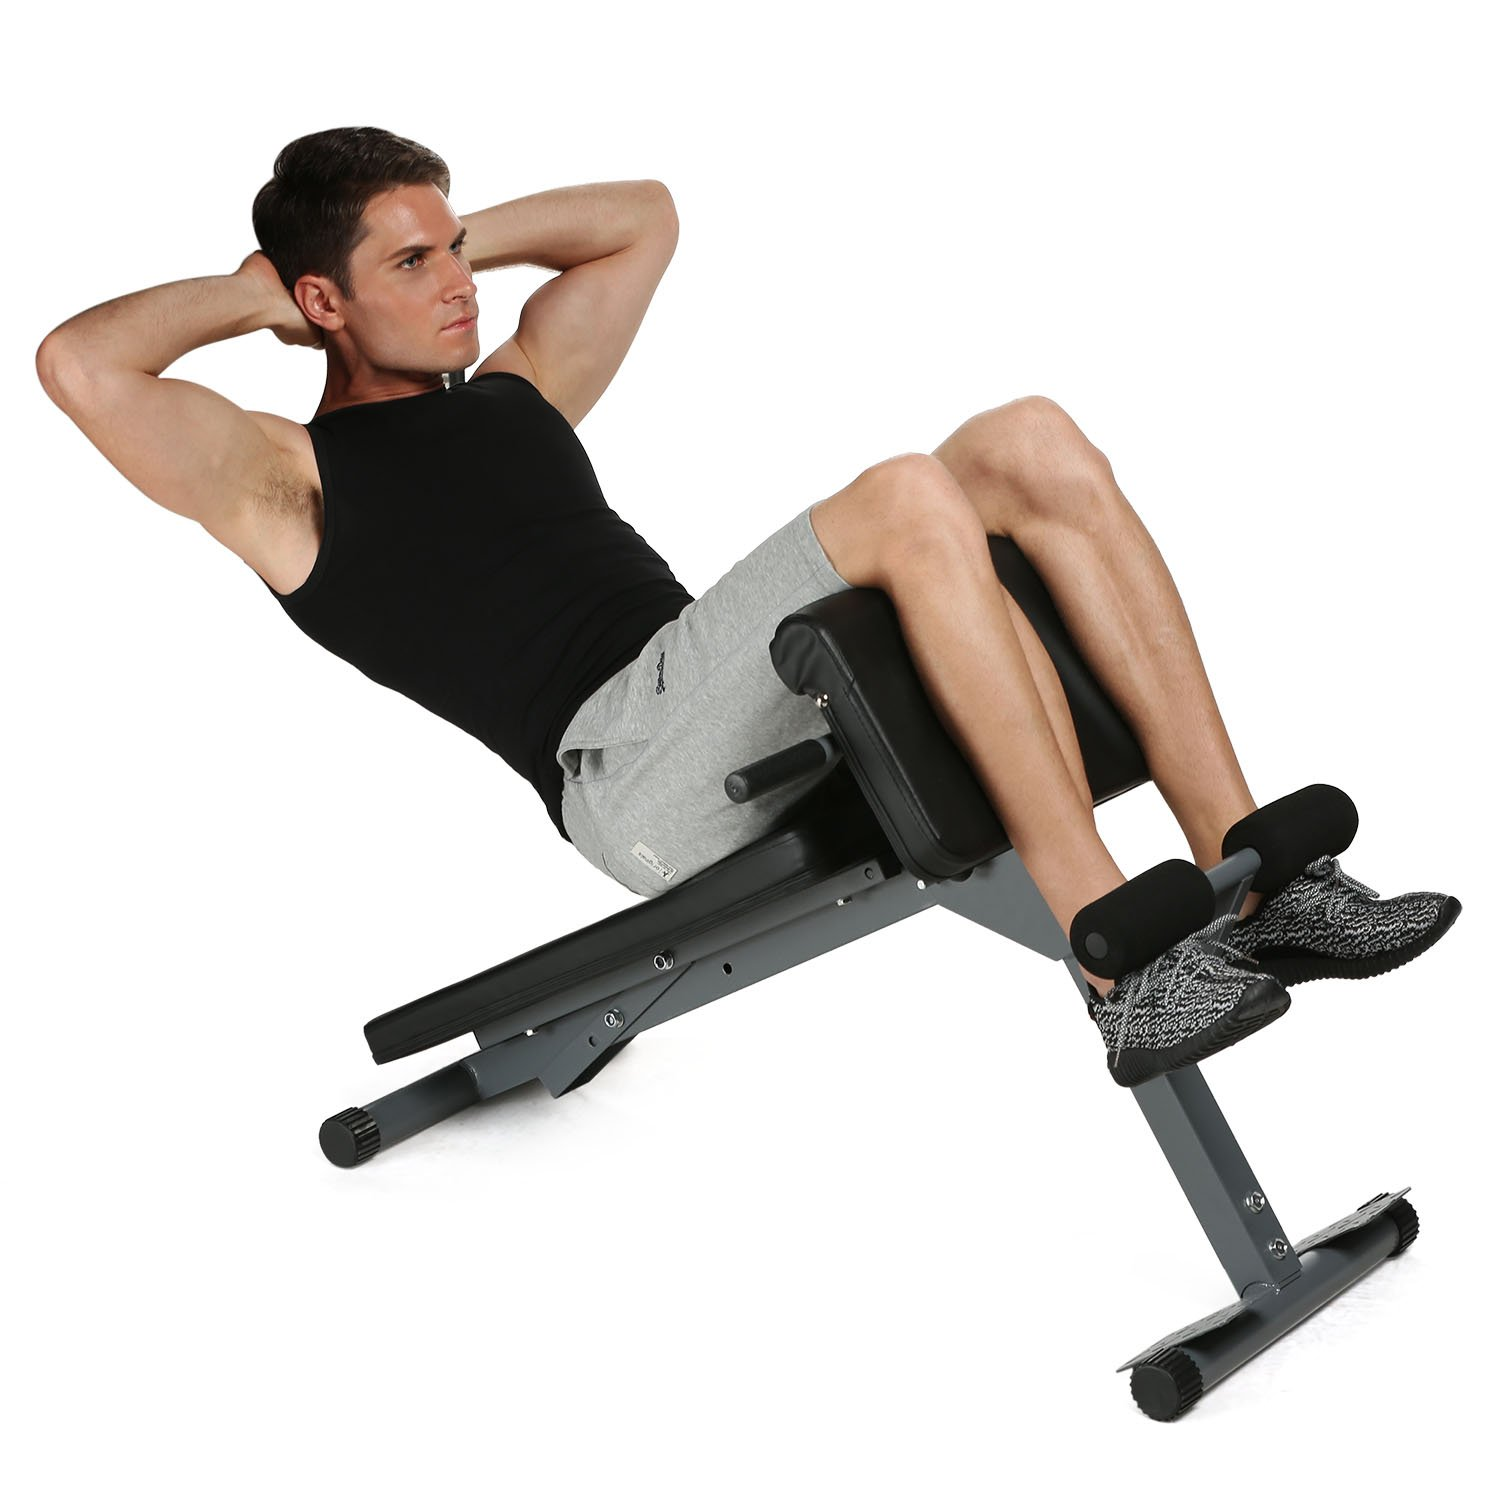 Adjustable Weight Bench, Utility Workout Benchs Incline Decline to Perfect for Multiple Workout